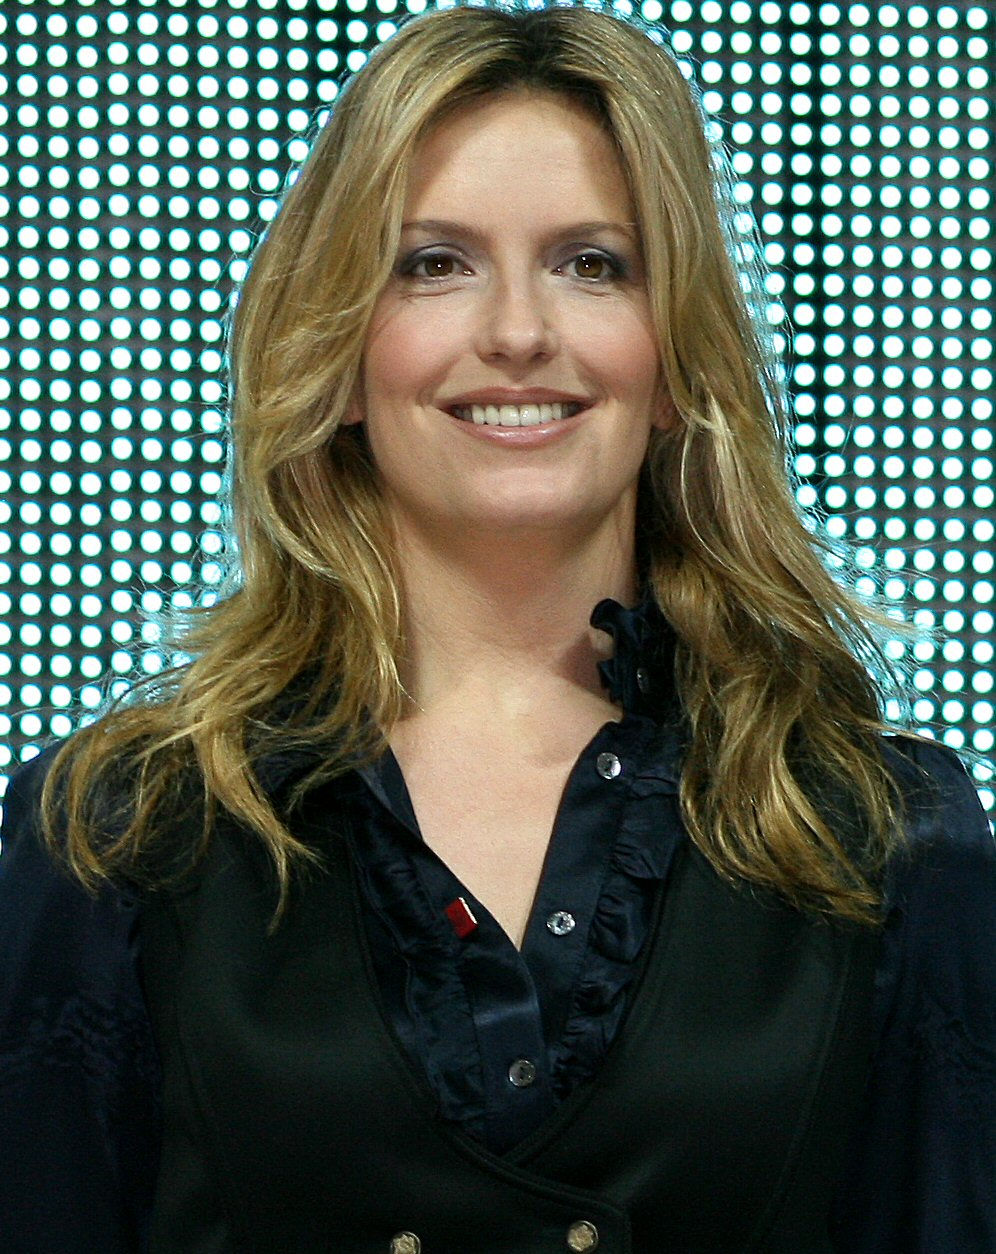 Photo of Penny Lancaster: British model and photographer